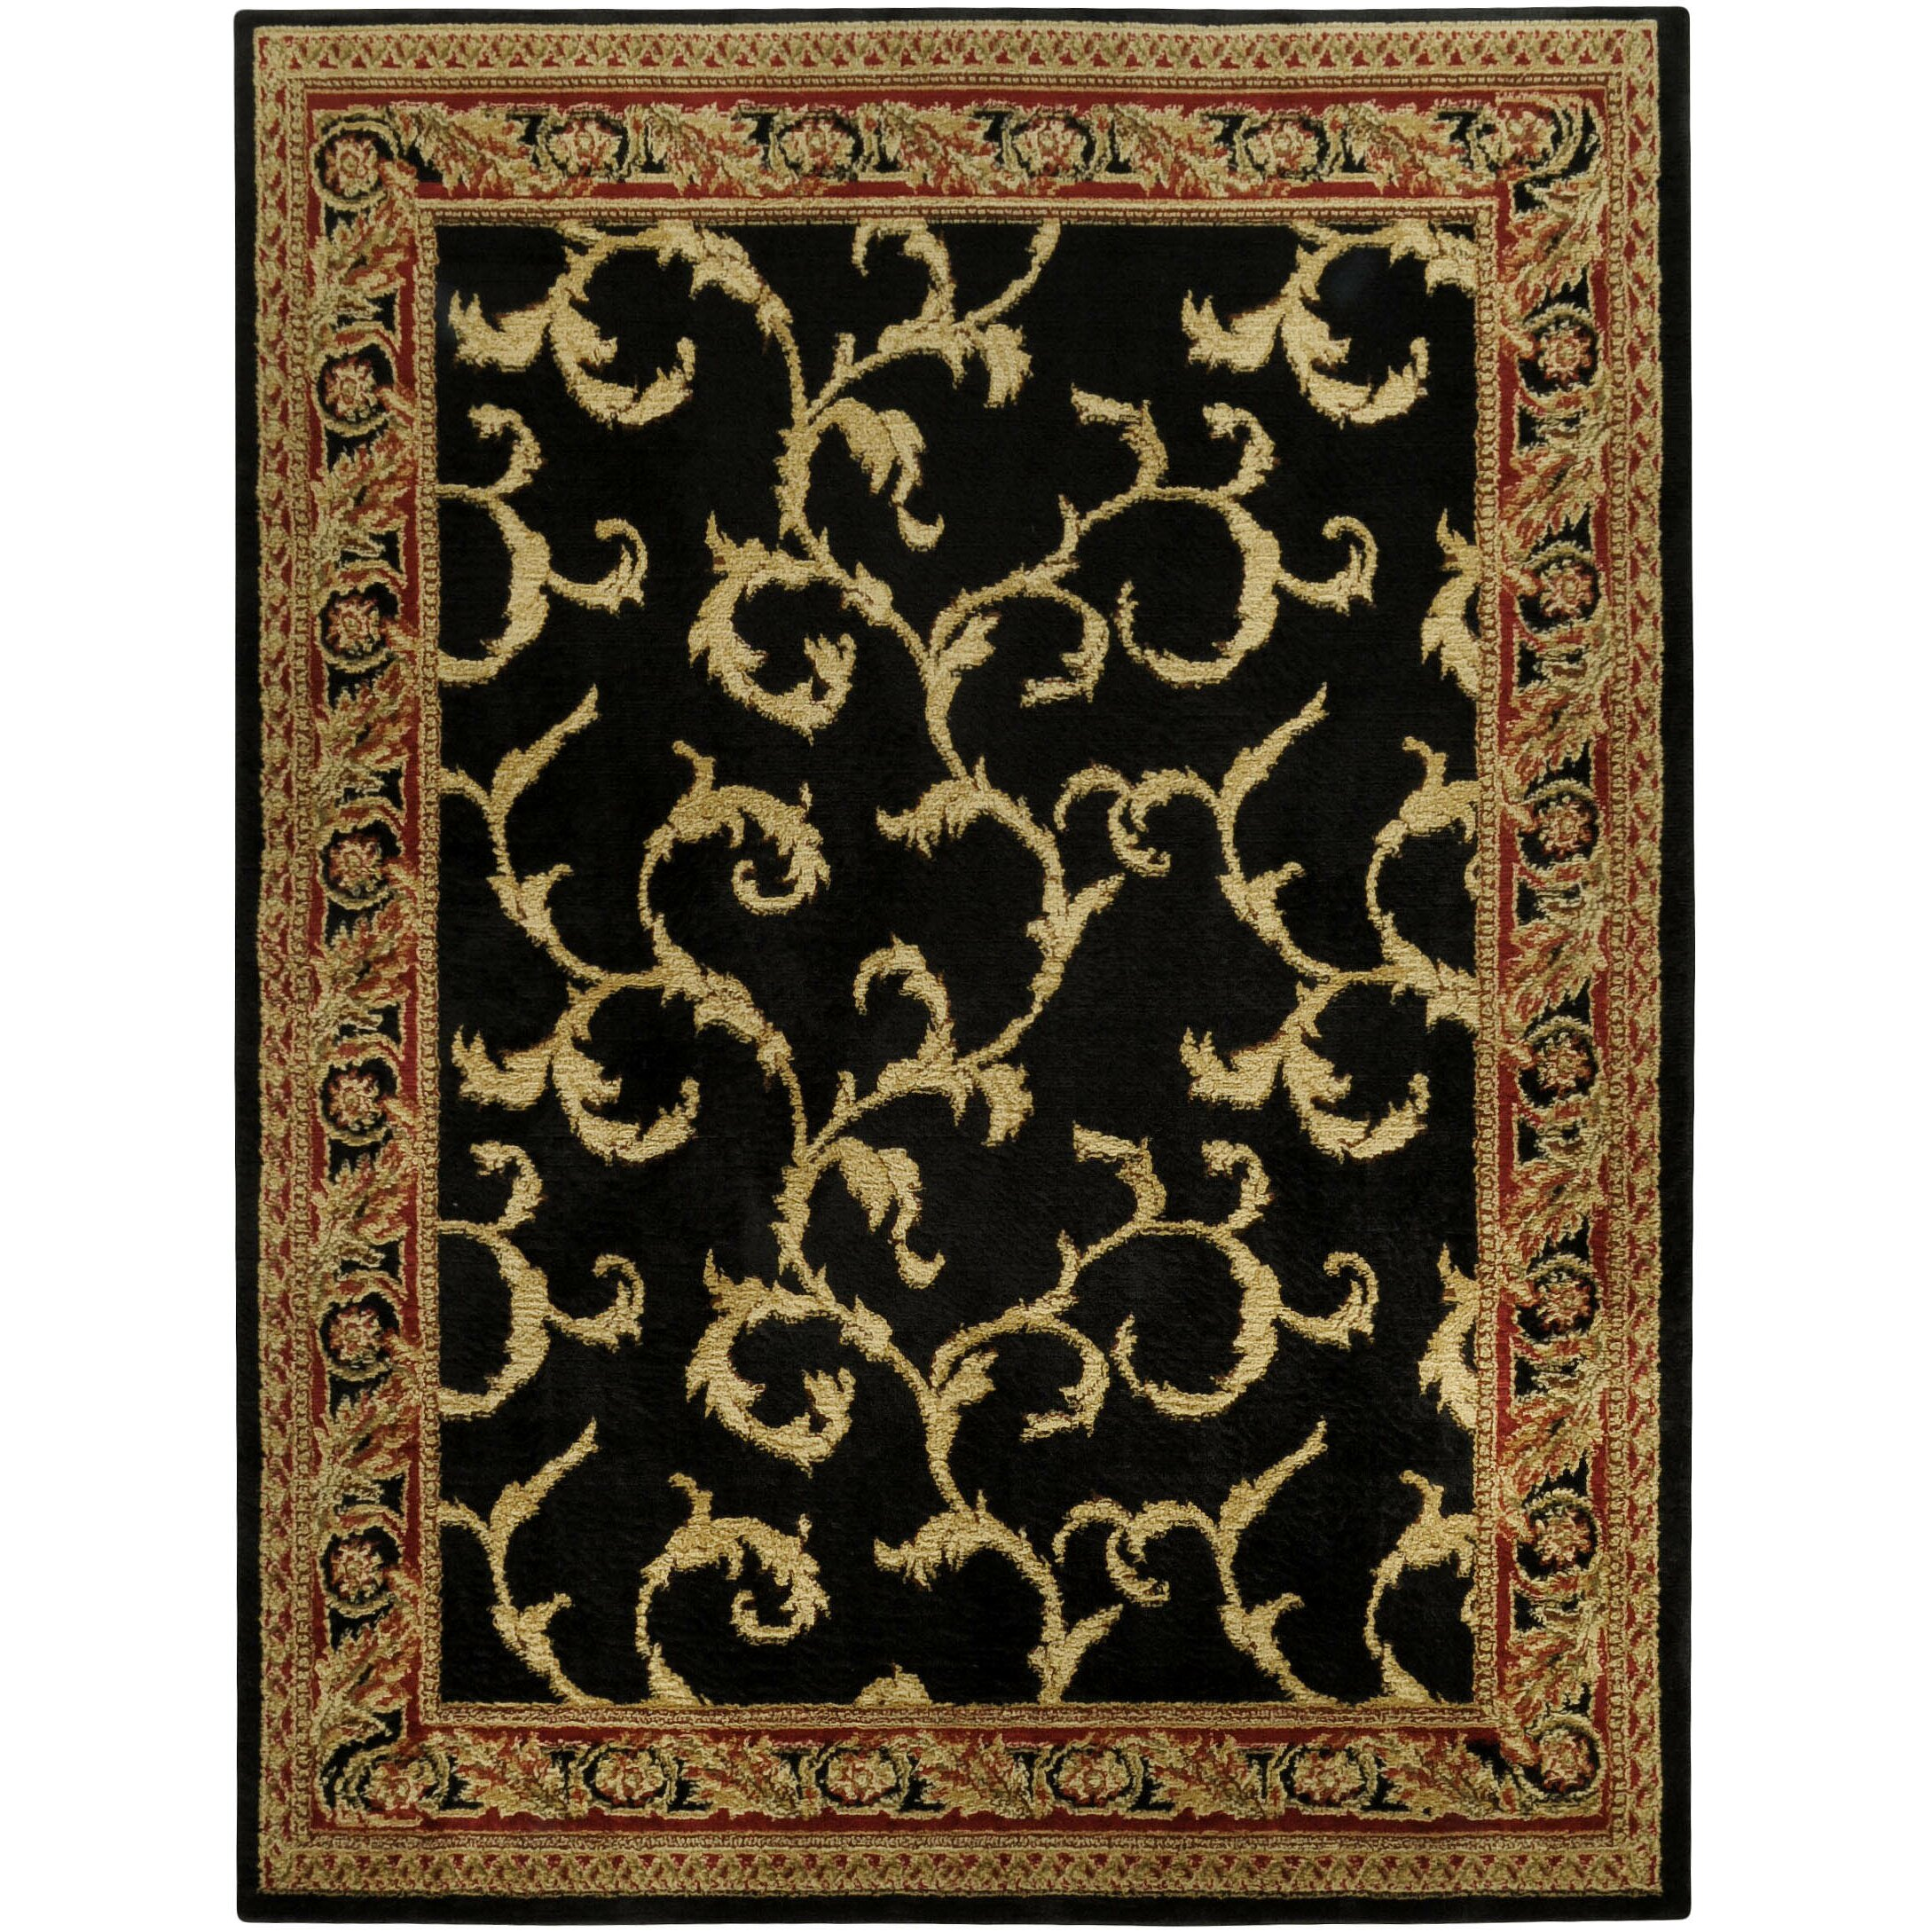 Rugnur Pasha Maxy Home Floral Traditional Black Ivory Area